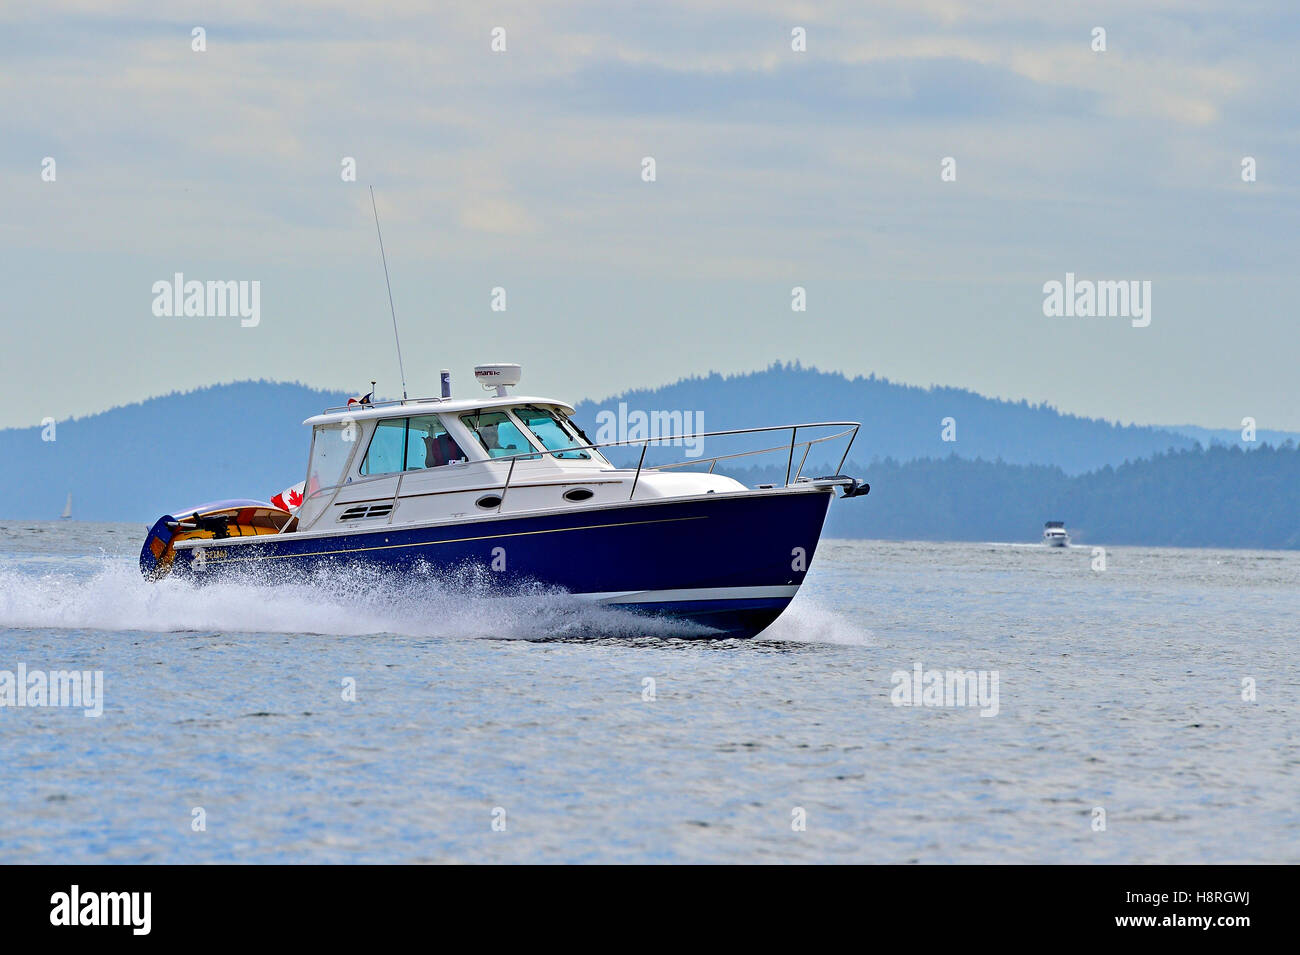 A motor boat cruising along at the calm waters of the Strait of Georgia  near Vancouver Island British Columbia Canada